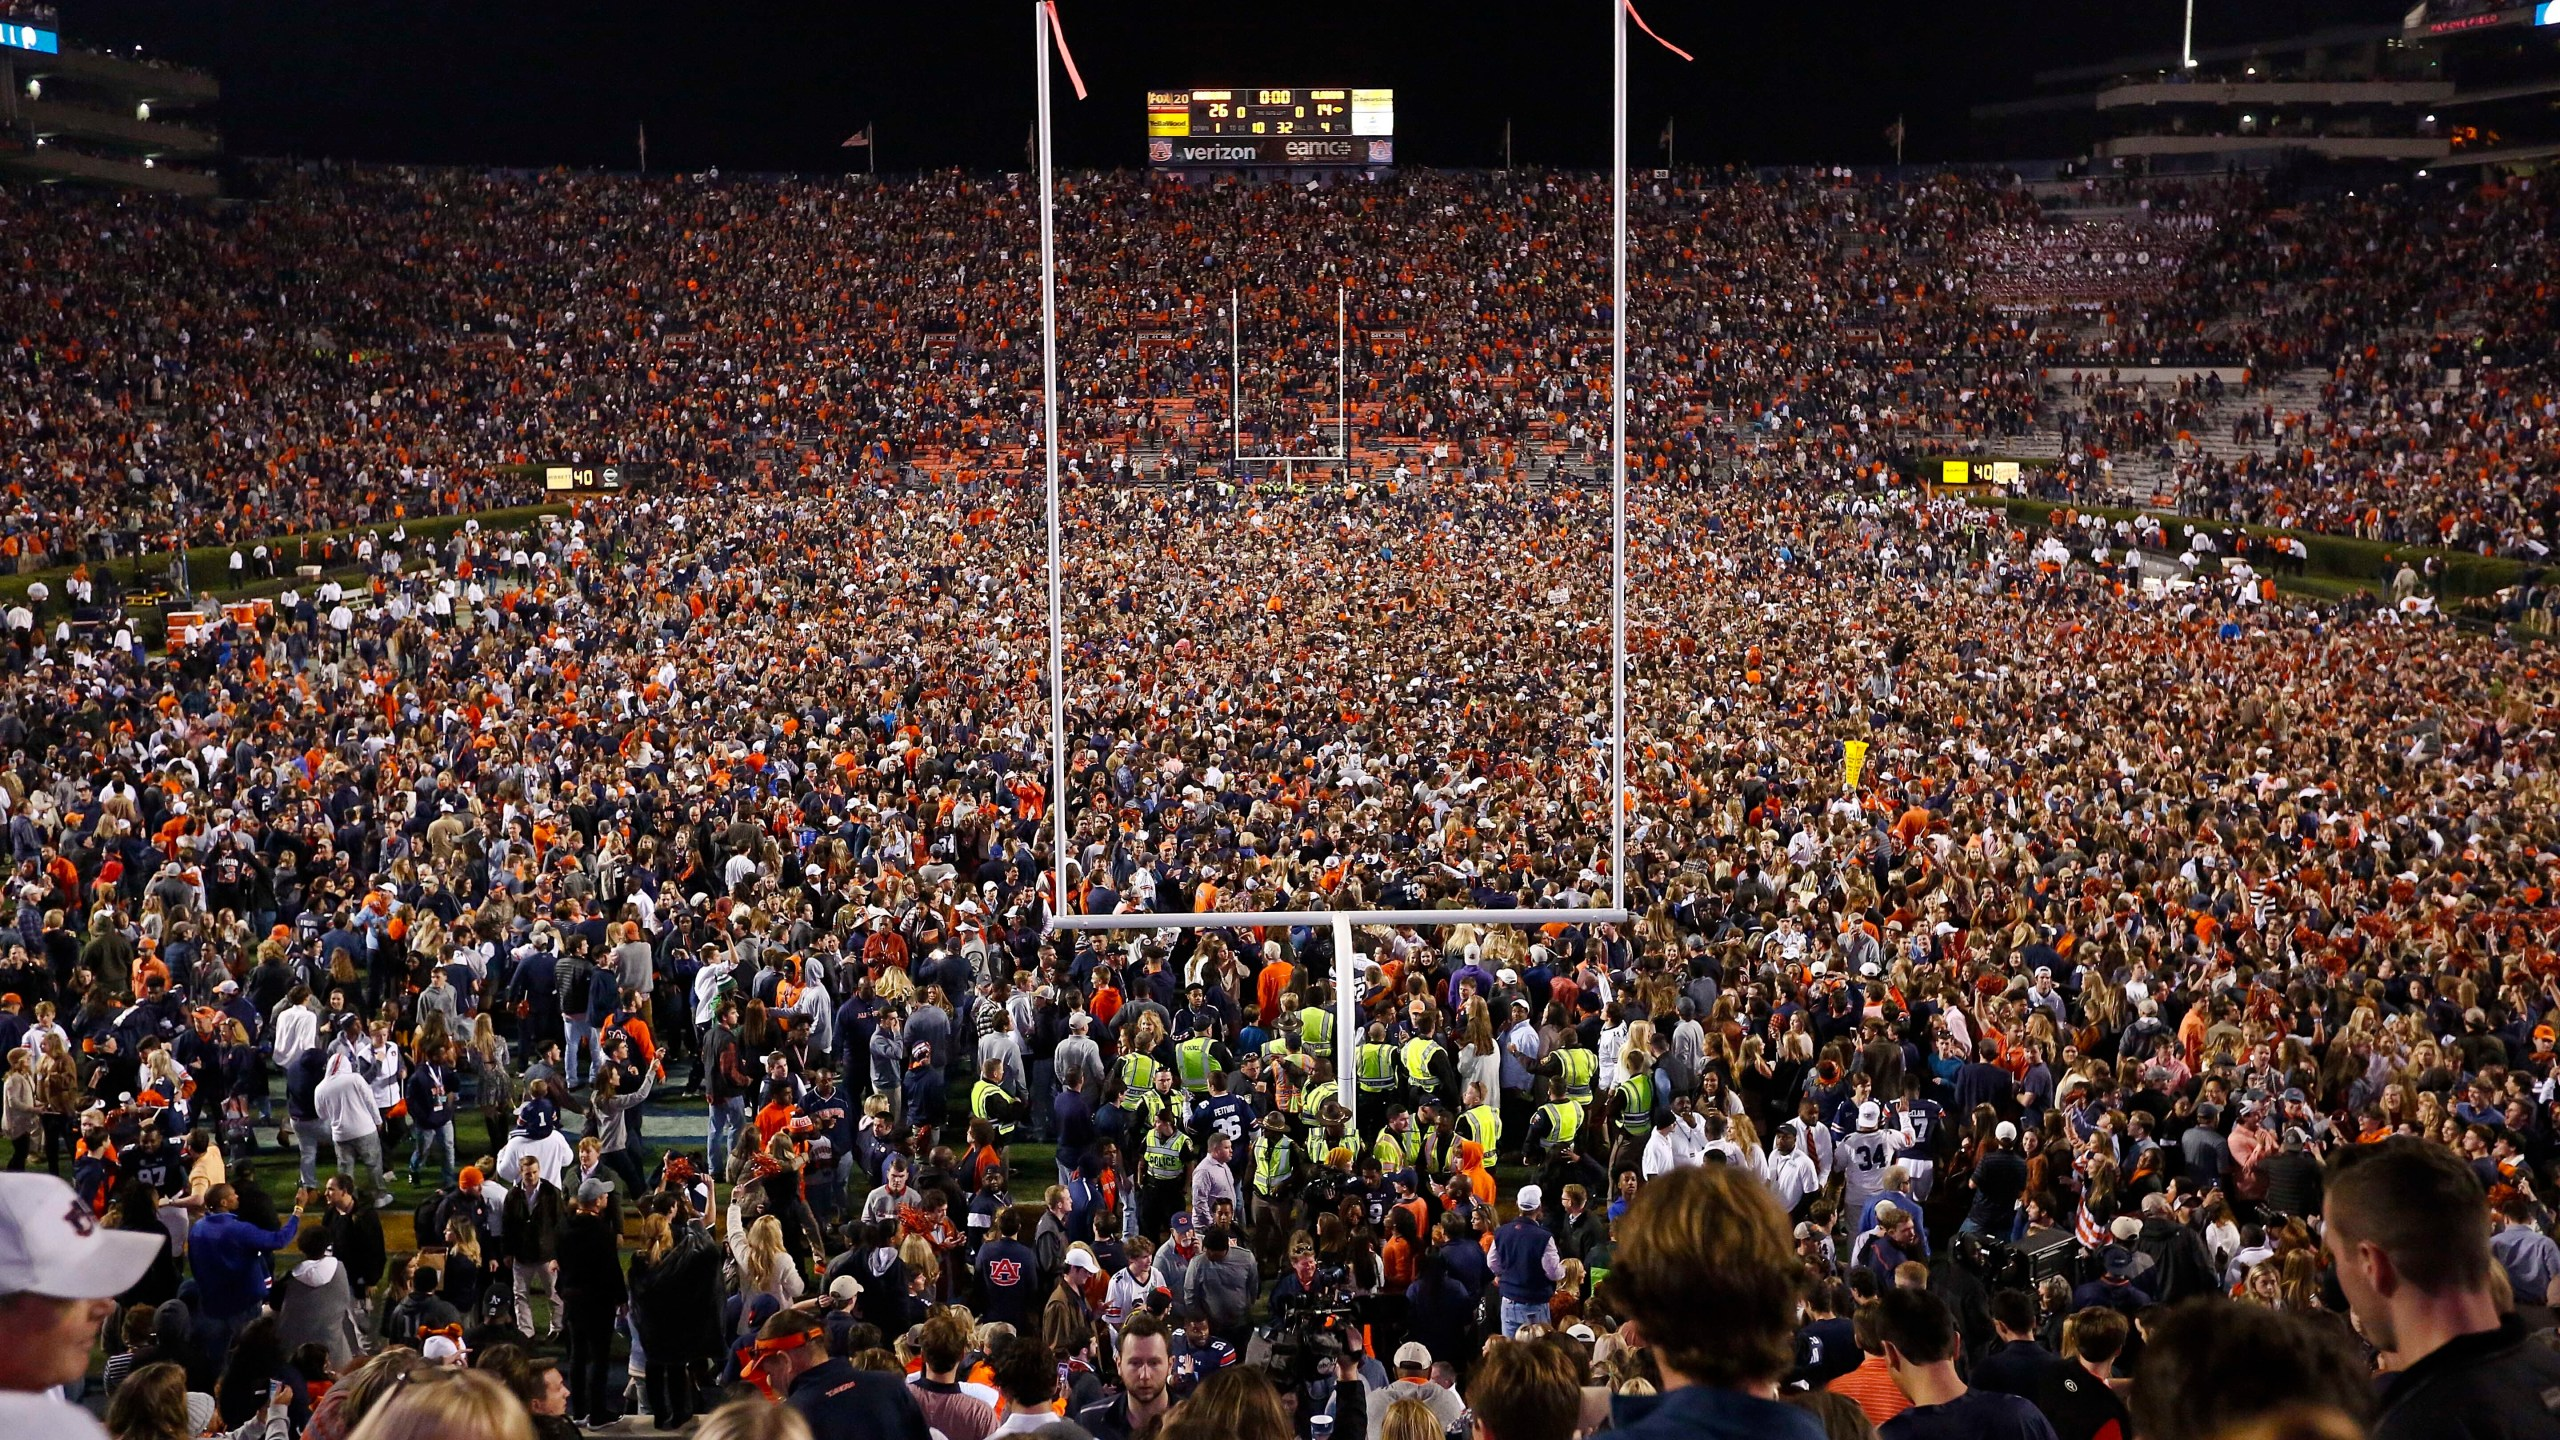 Fans rush the field after Auburn defeated Alabama in the Iron Bowl NCAA college football game, Saturday, Nov. 25, 2017, in Auburn, Ala. (AP Photo/Brynn Anderson, File)